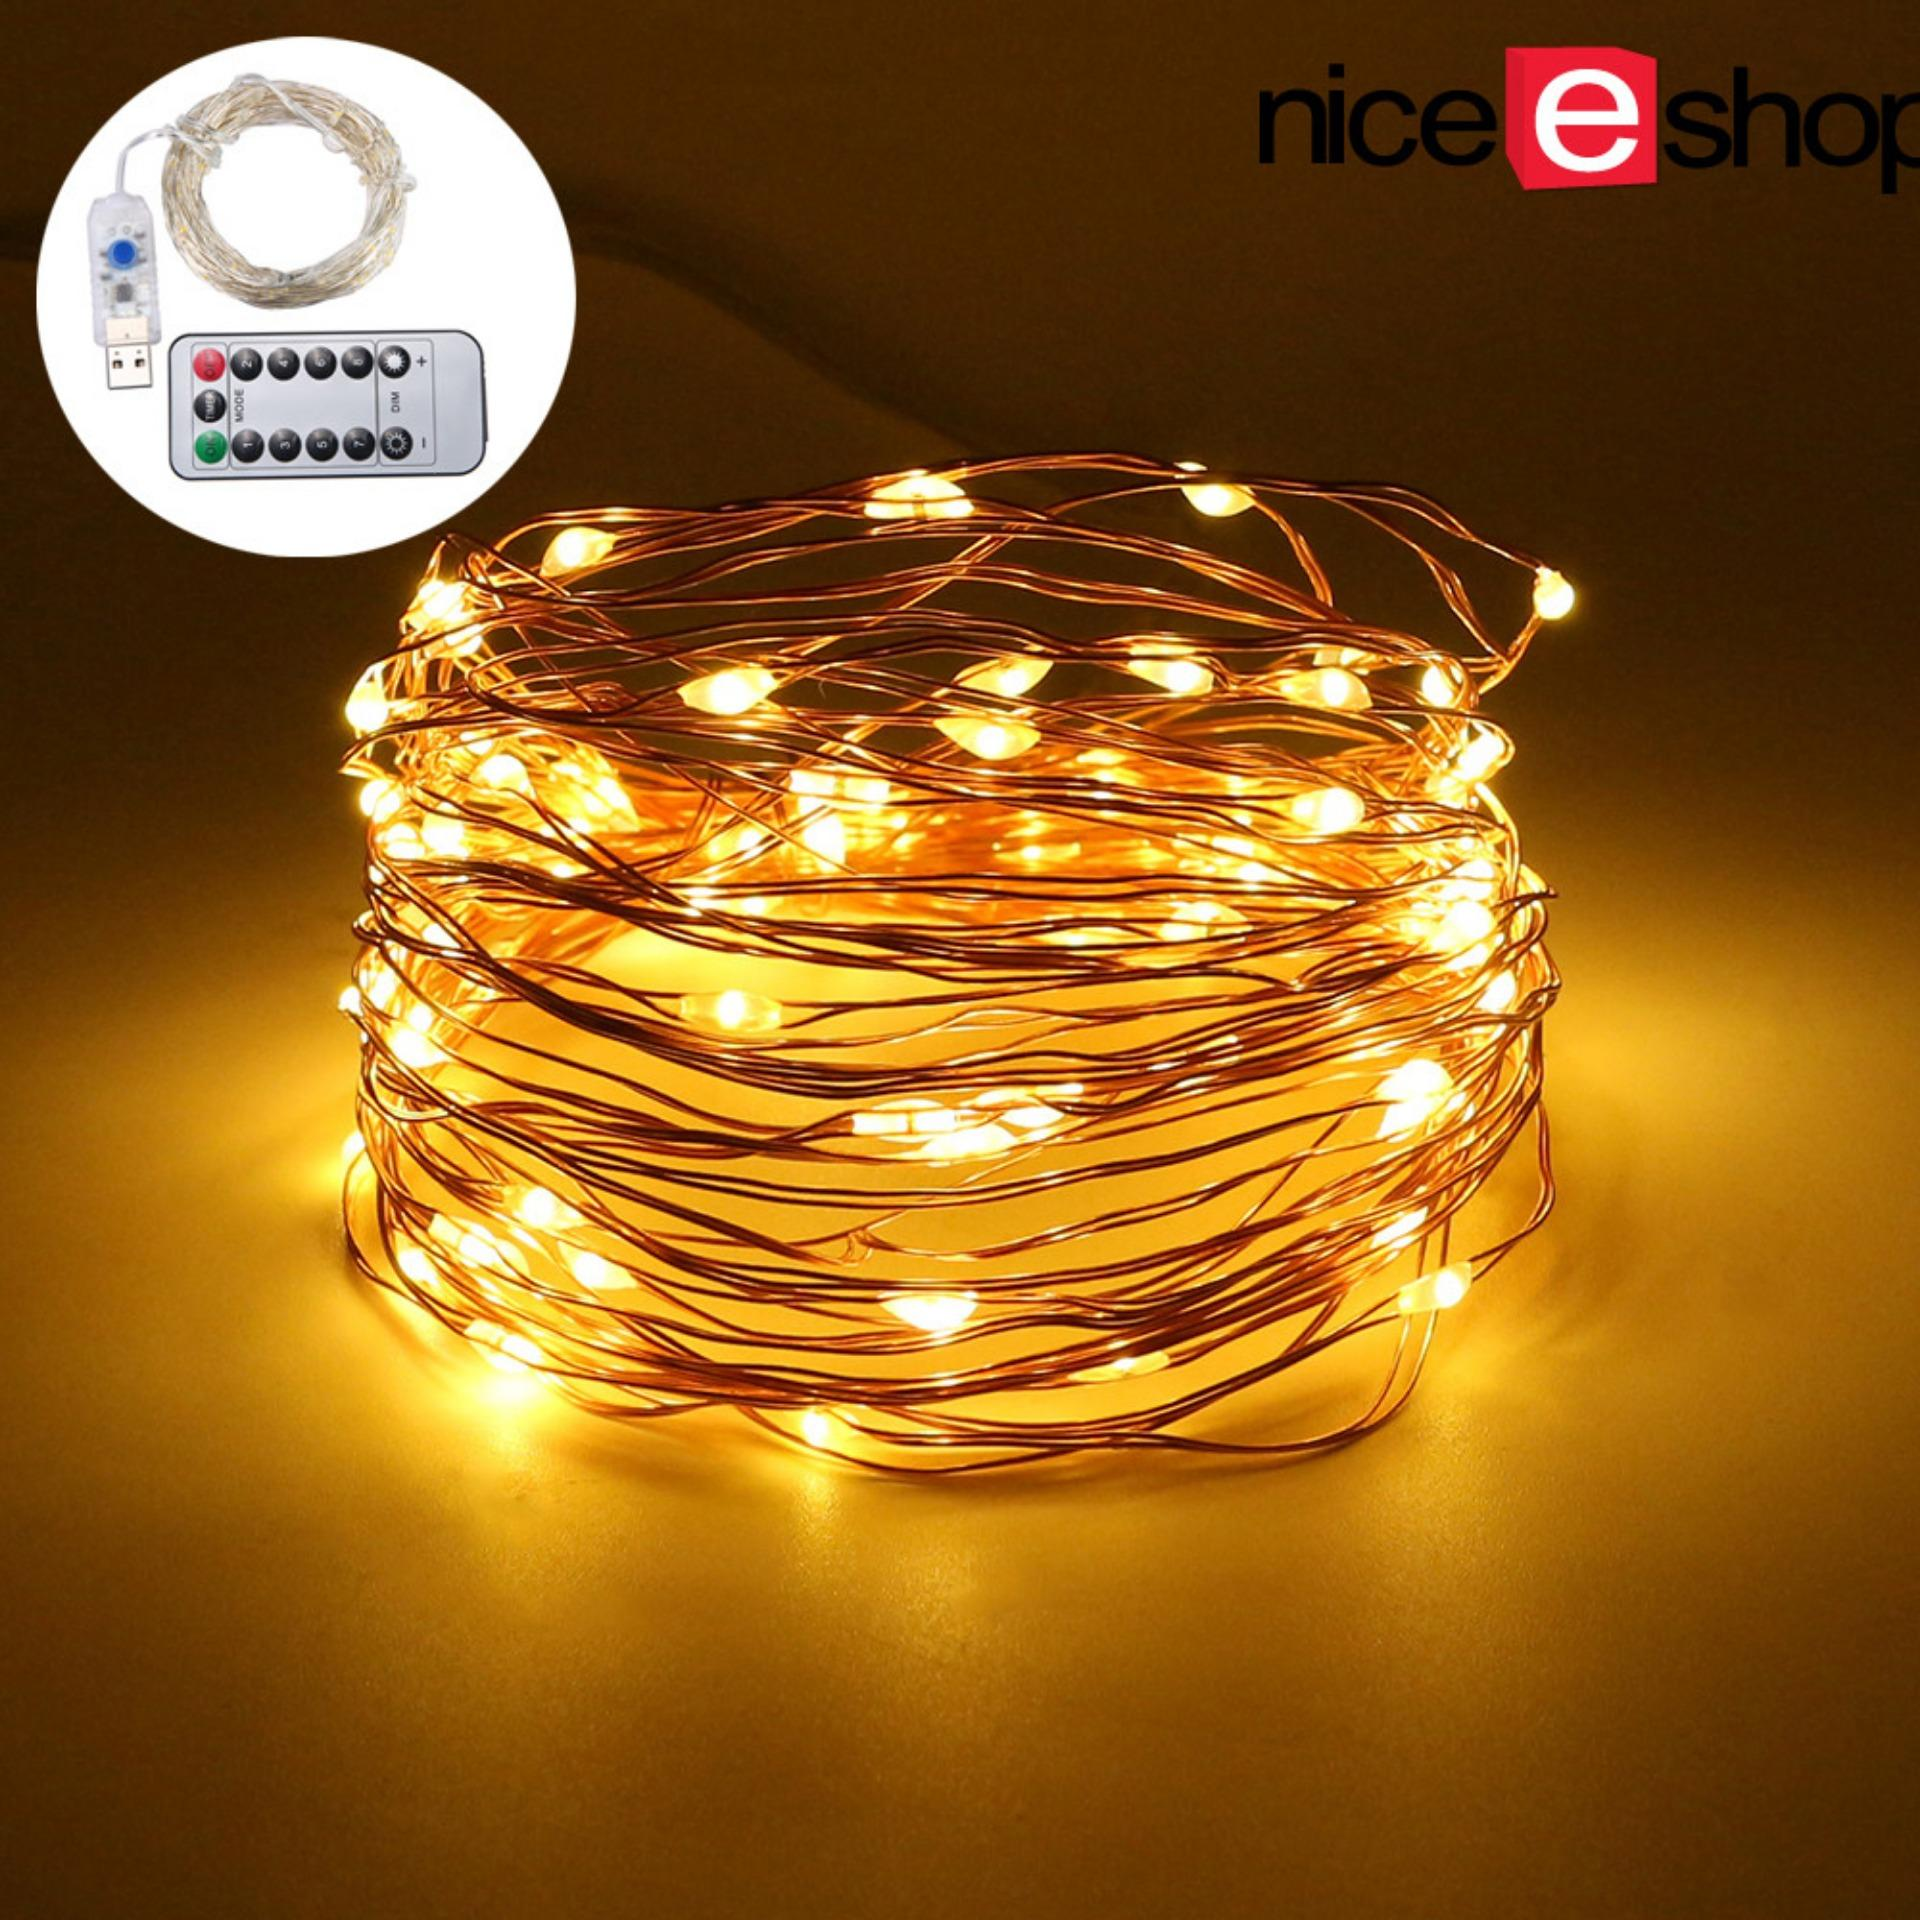 niceEshop LED Fairy String Lights Indoor And Outdoor 10m/ 33ft 100 LEDs Powered Via USB